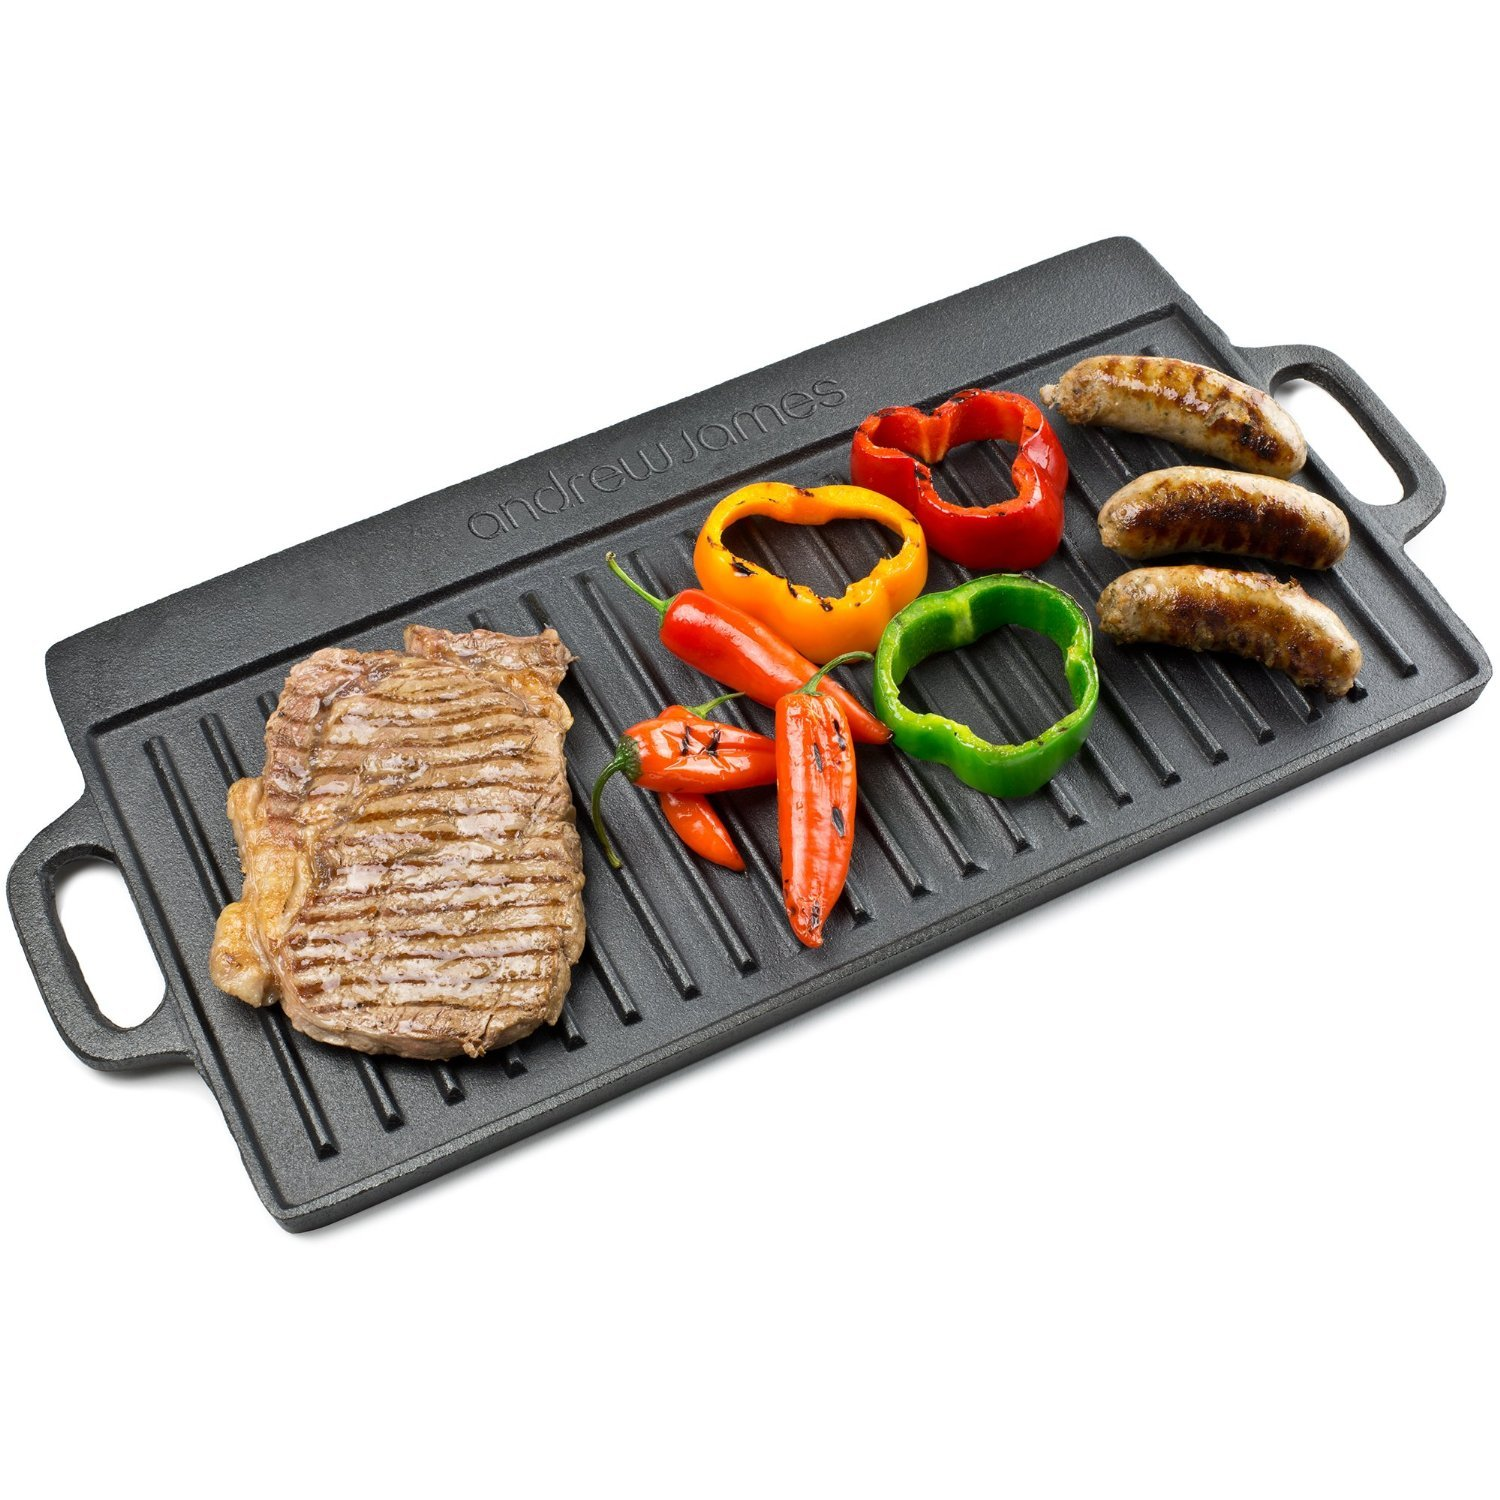 Andrew James Cast Iron Griddle Pan Double Sided and Reversible